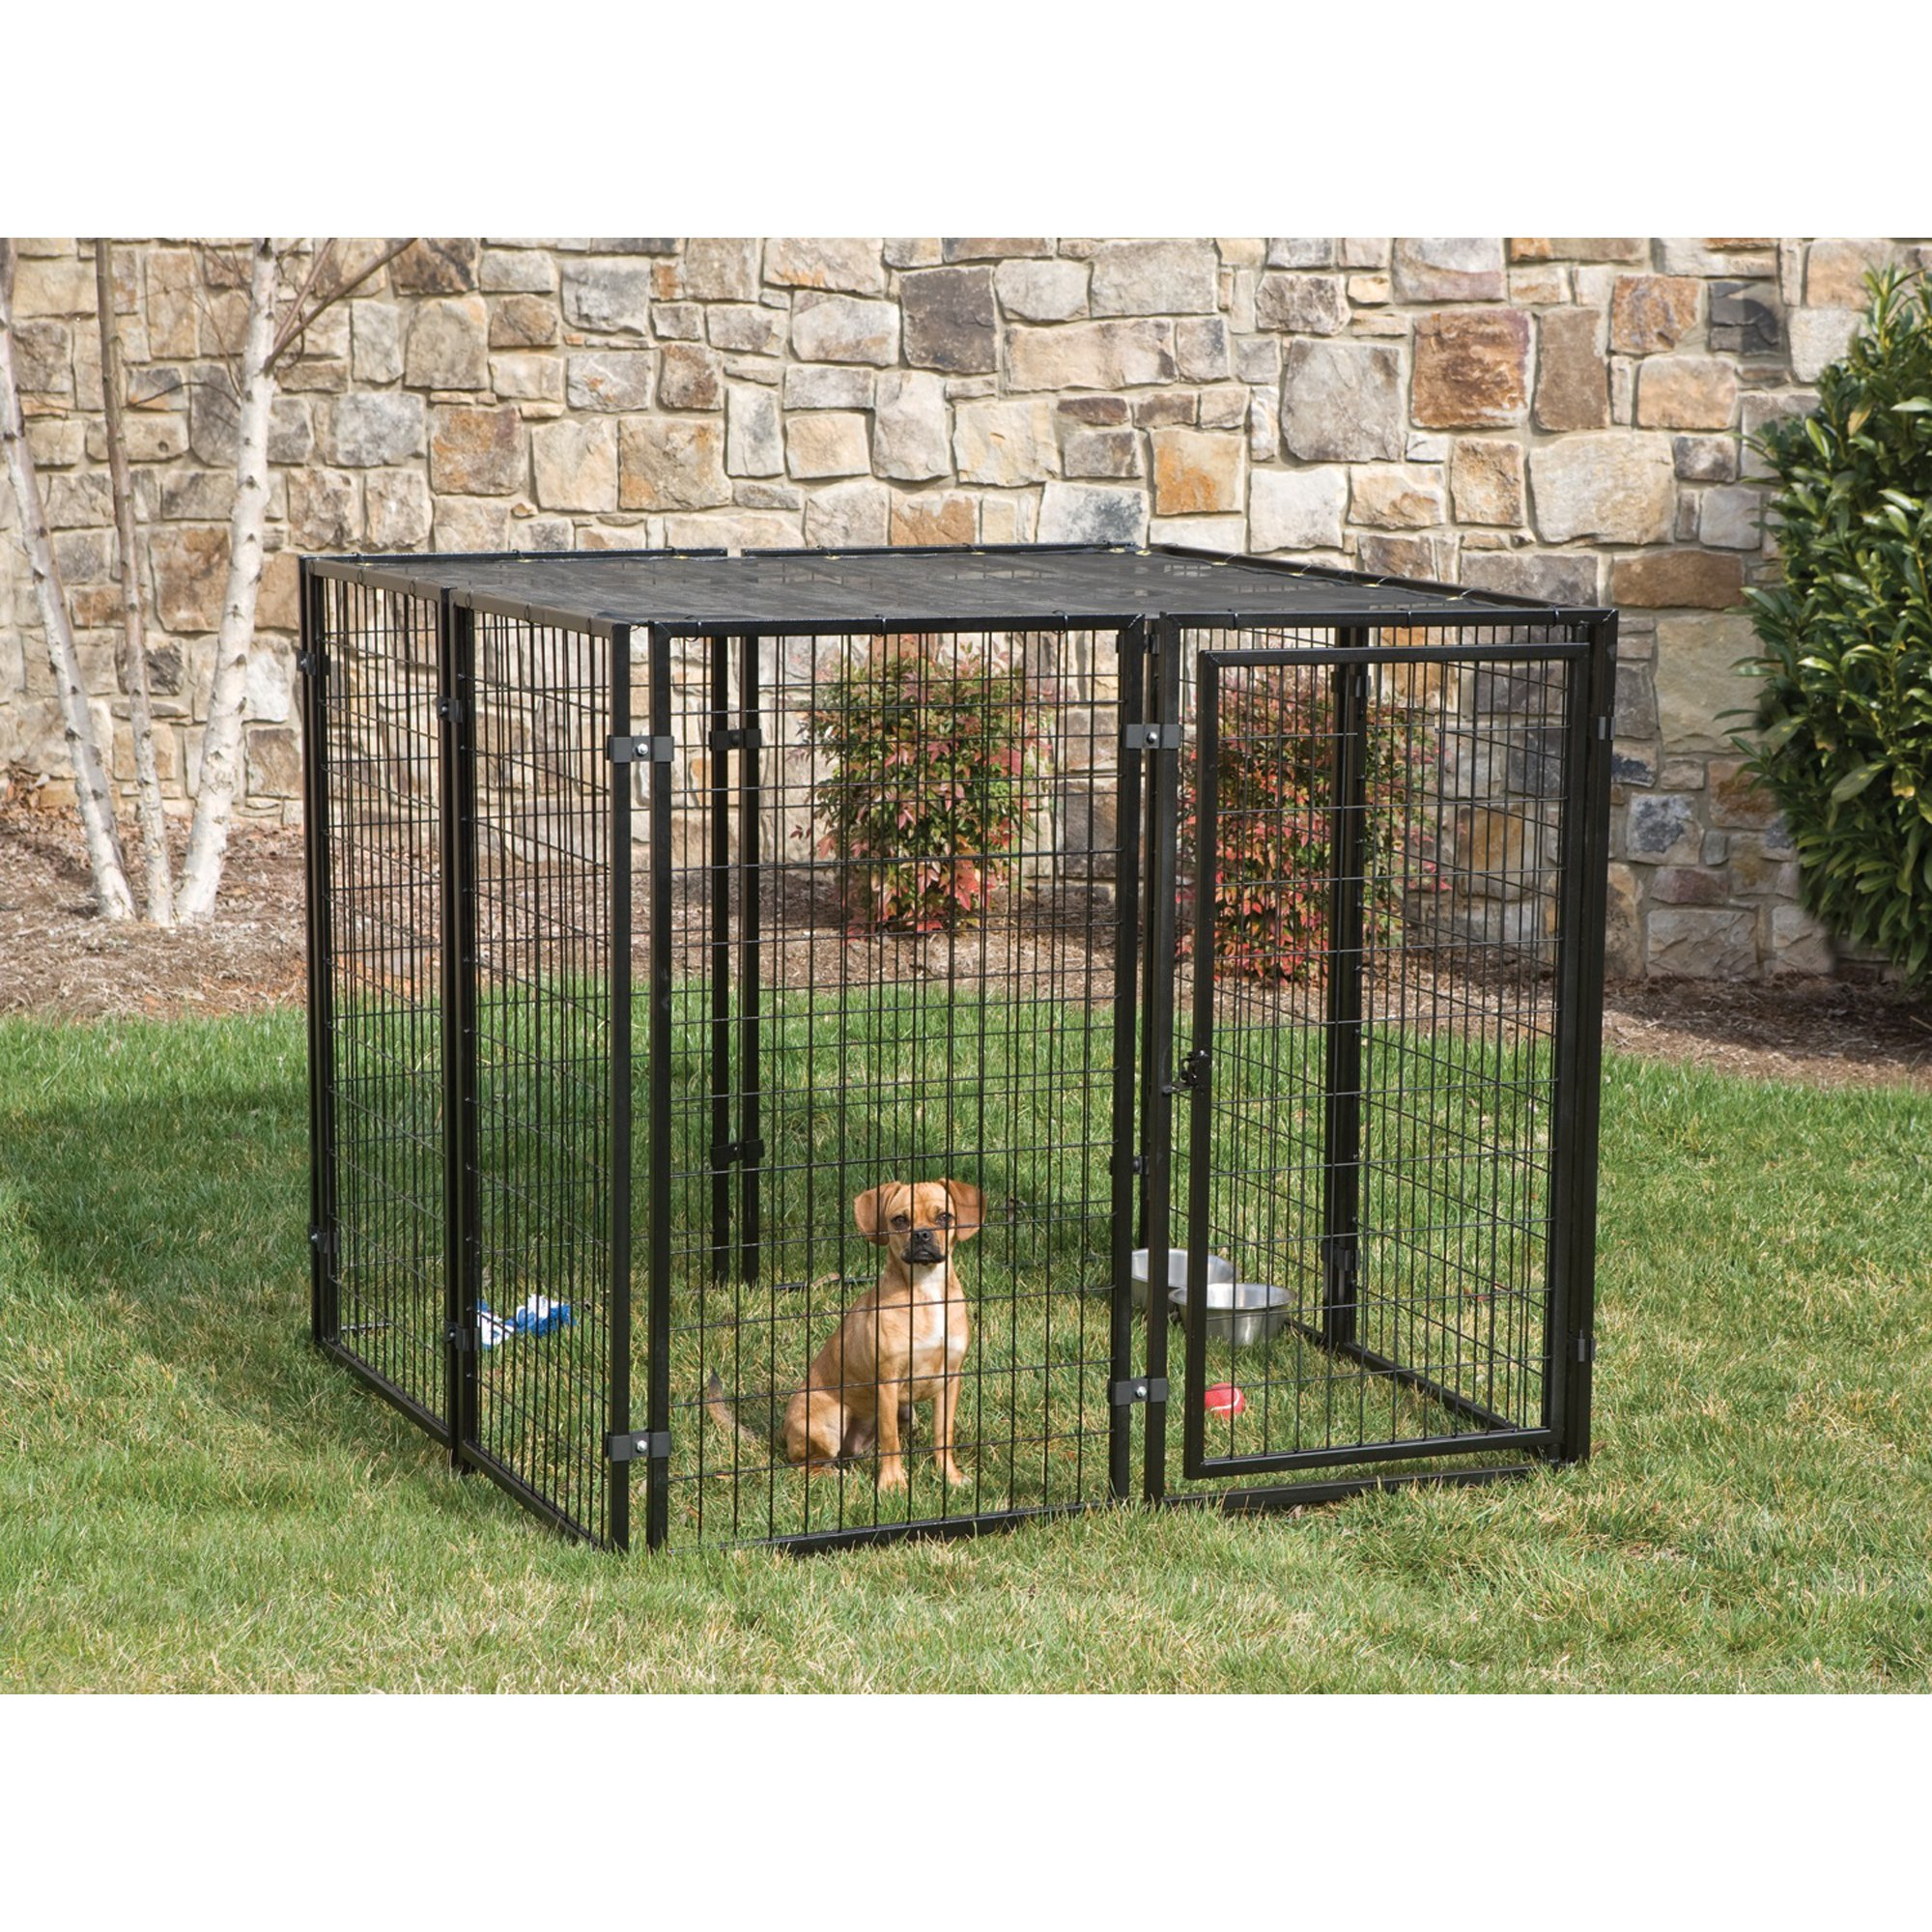 Fencemaster Cottageview Dog Kennel Petco Dog Kennel Outdoor